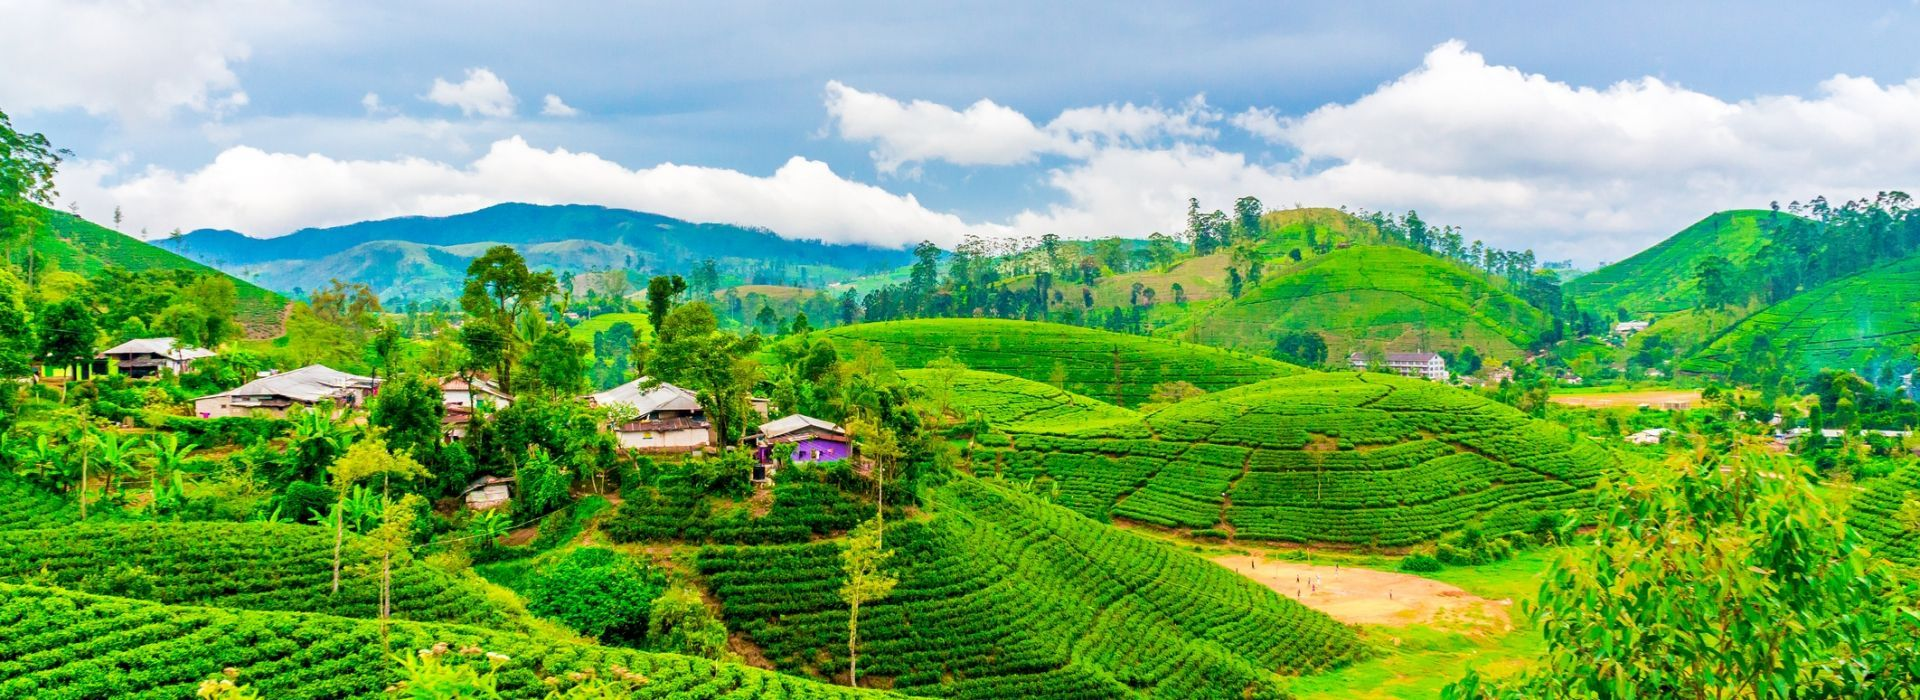 Active and outdoor Tours in Sri Lanka